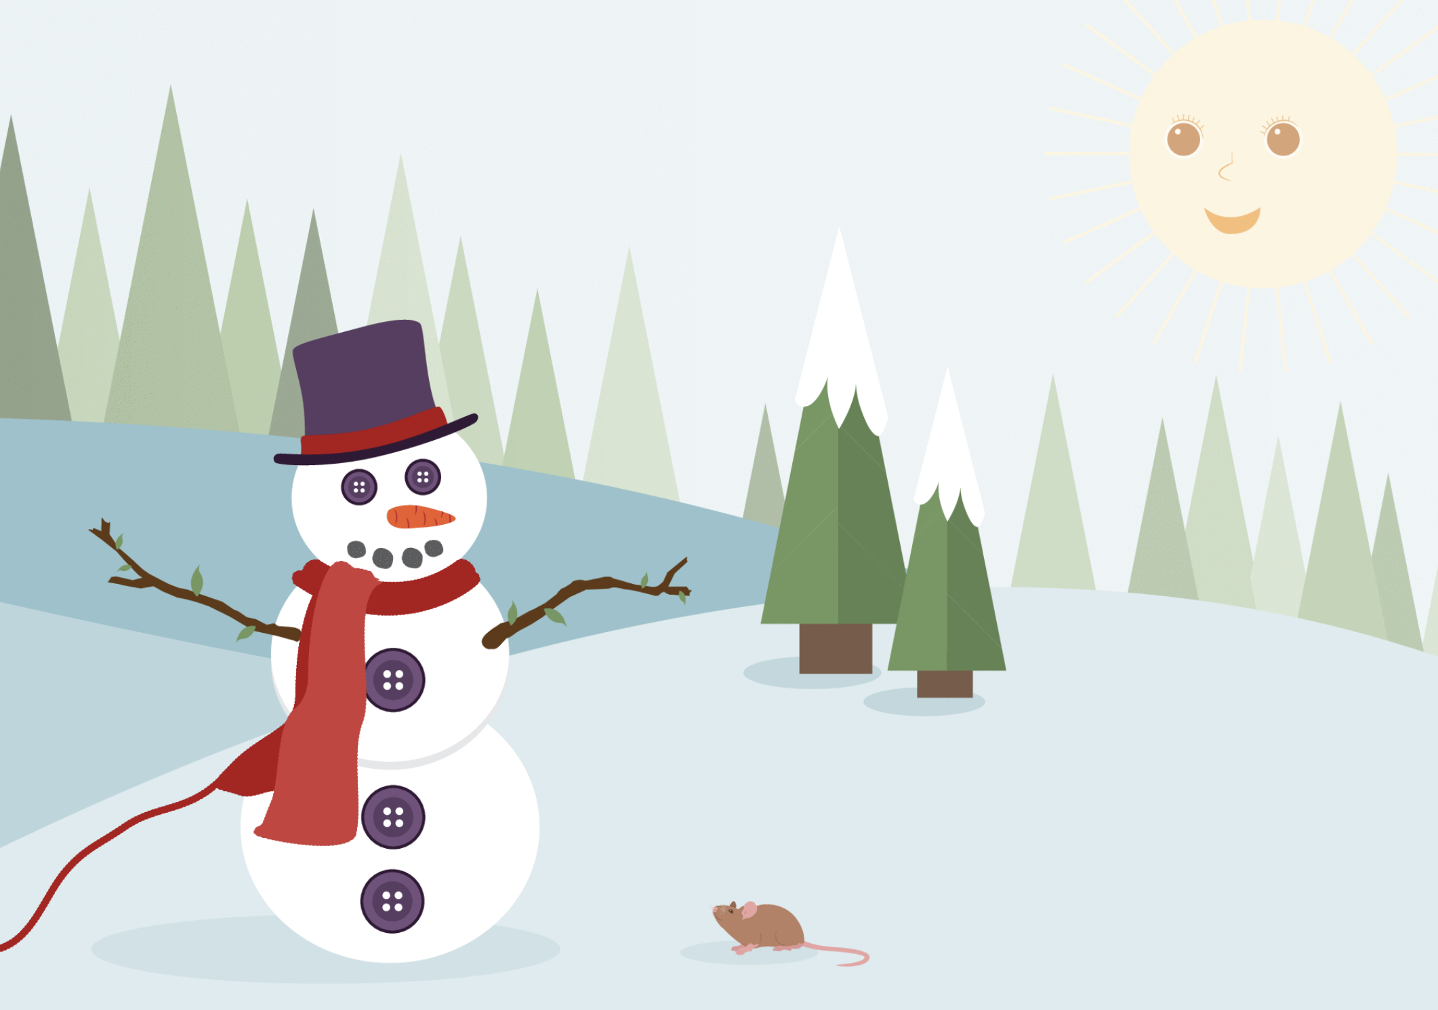 A snow person talks with Little Mouse. The snow person has 2 buttons for eyes. 3 more buttons suggest clothes. A carrot makes a nose. And 4 dots make a mouth. The snow person has 2 sticks for arms. It's wearing a top hat and a scarf with a long string of yarn coming off. 17 triangles make trees in the background. 2 more triangles with snow on top are closer. The sun is shining, too. It has 2 eyes, a nose, and a mouth.